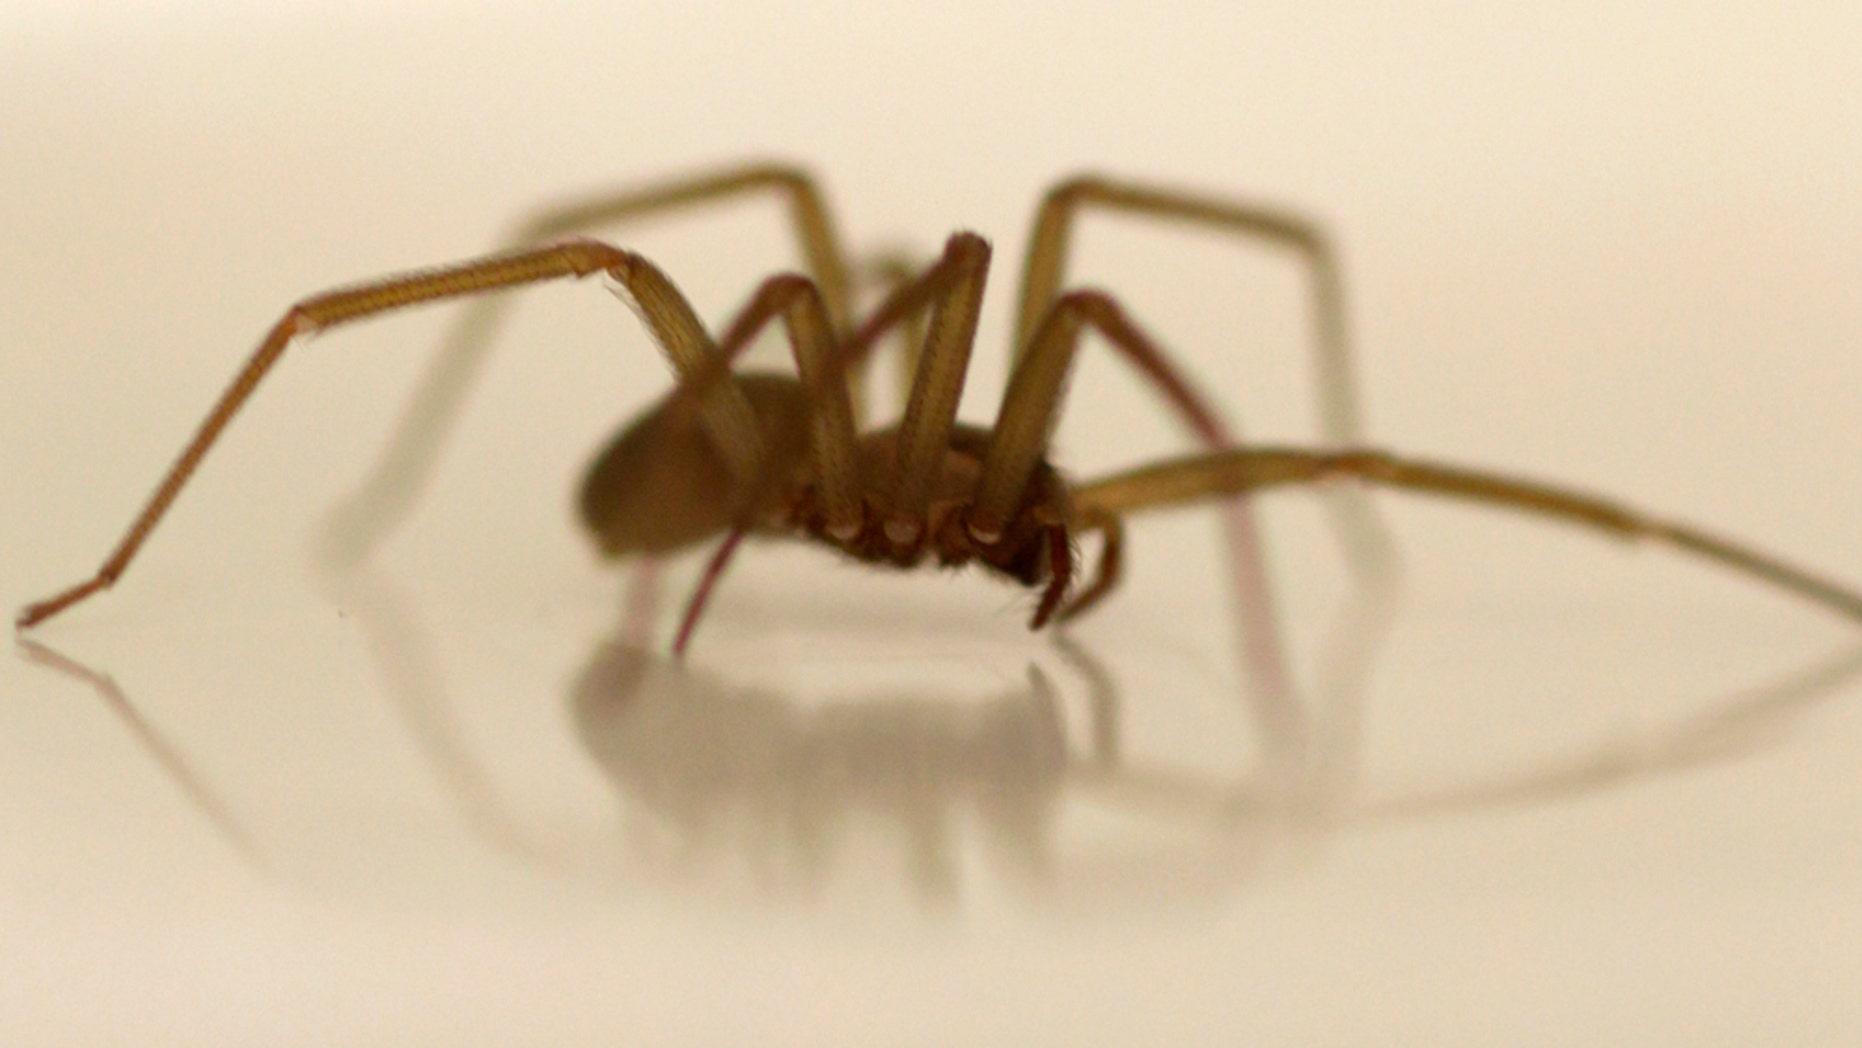 A live Brown Recluse Spider crawls in a dish at the Smithsonian Institution National Museum of Natural History in Washington, Wednesday, March 30, 2011. It's that time of year when the bugs emerge to bug us. Some can pose real threats _ Lyme disease from tiny ticks, West Nile virus from mosquitoes, or life-threatening allergic reactions to bee stings. But most bug bites in this country are an itchy nuisance. (AP Photo/Carolyn Kaster)